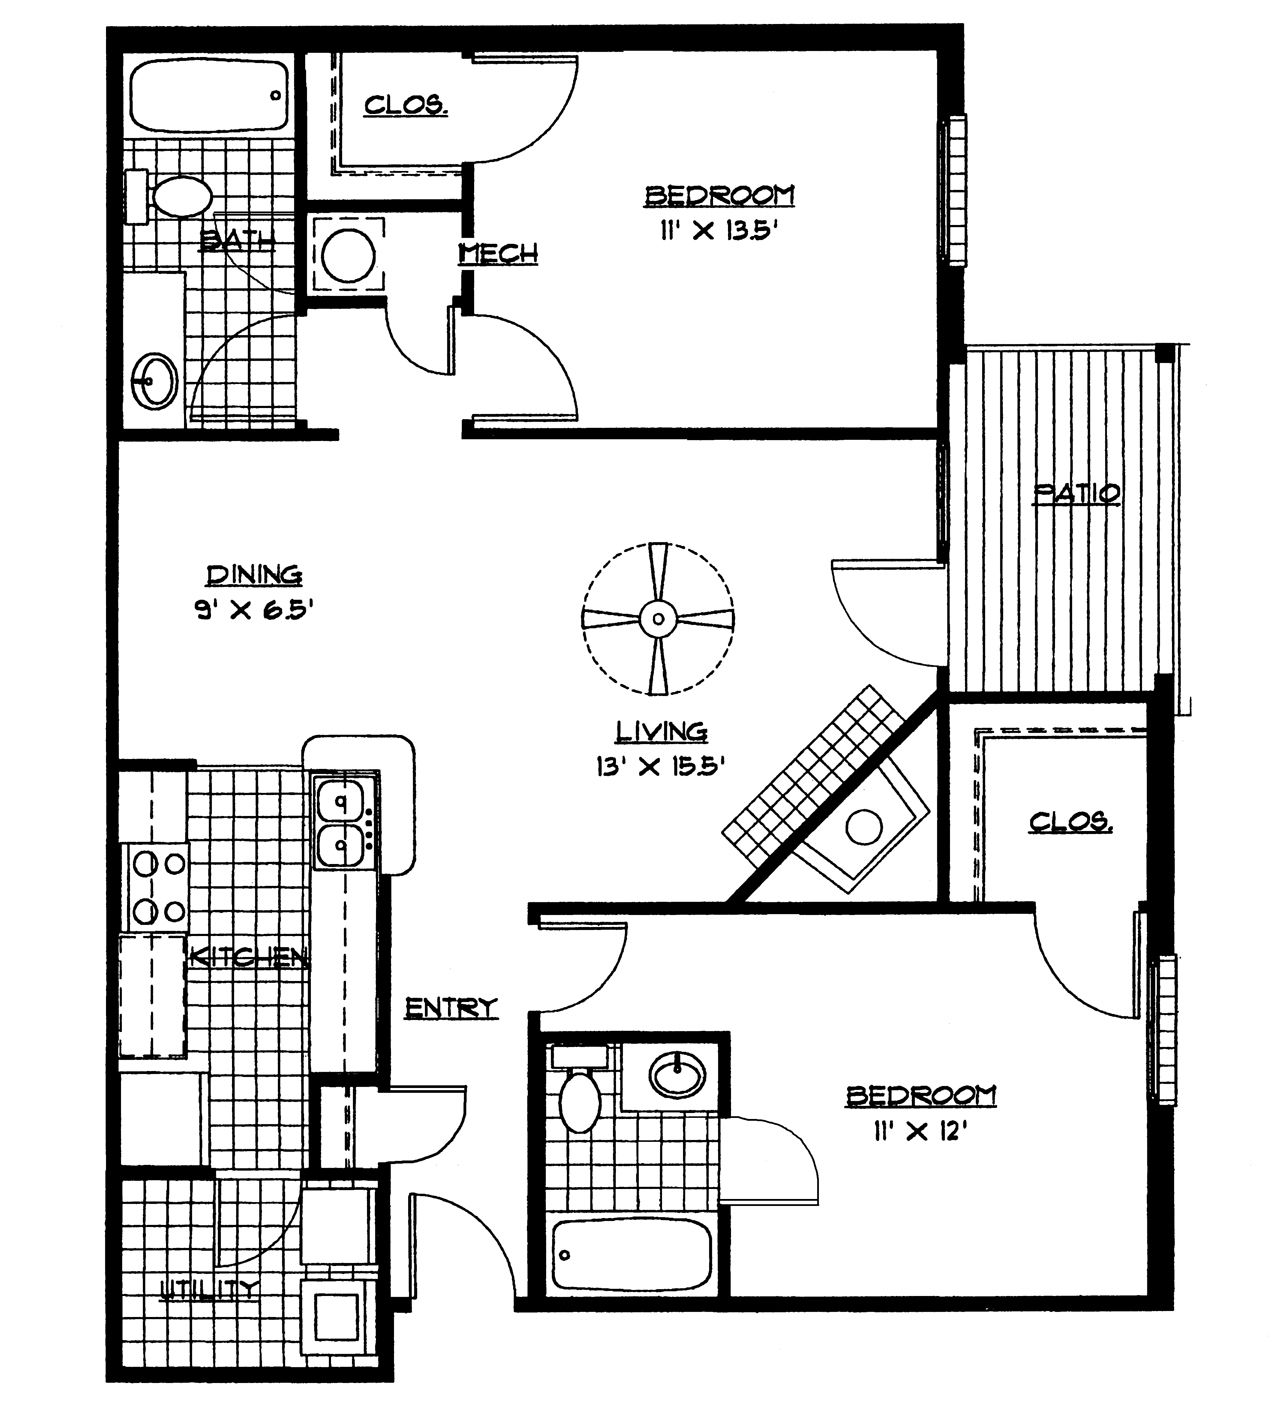 3 Bedroom House Floor Plan simple one story 3 bedroom house plans Small House Floor Plans 2 Bedrooms Bedroom Floor Plan Download Printable Pdf